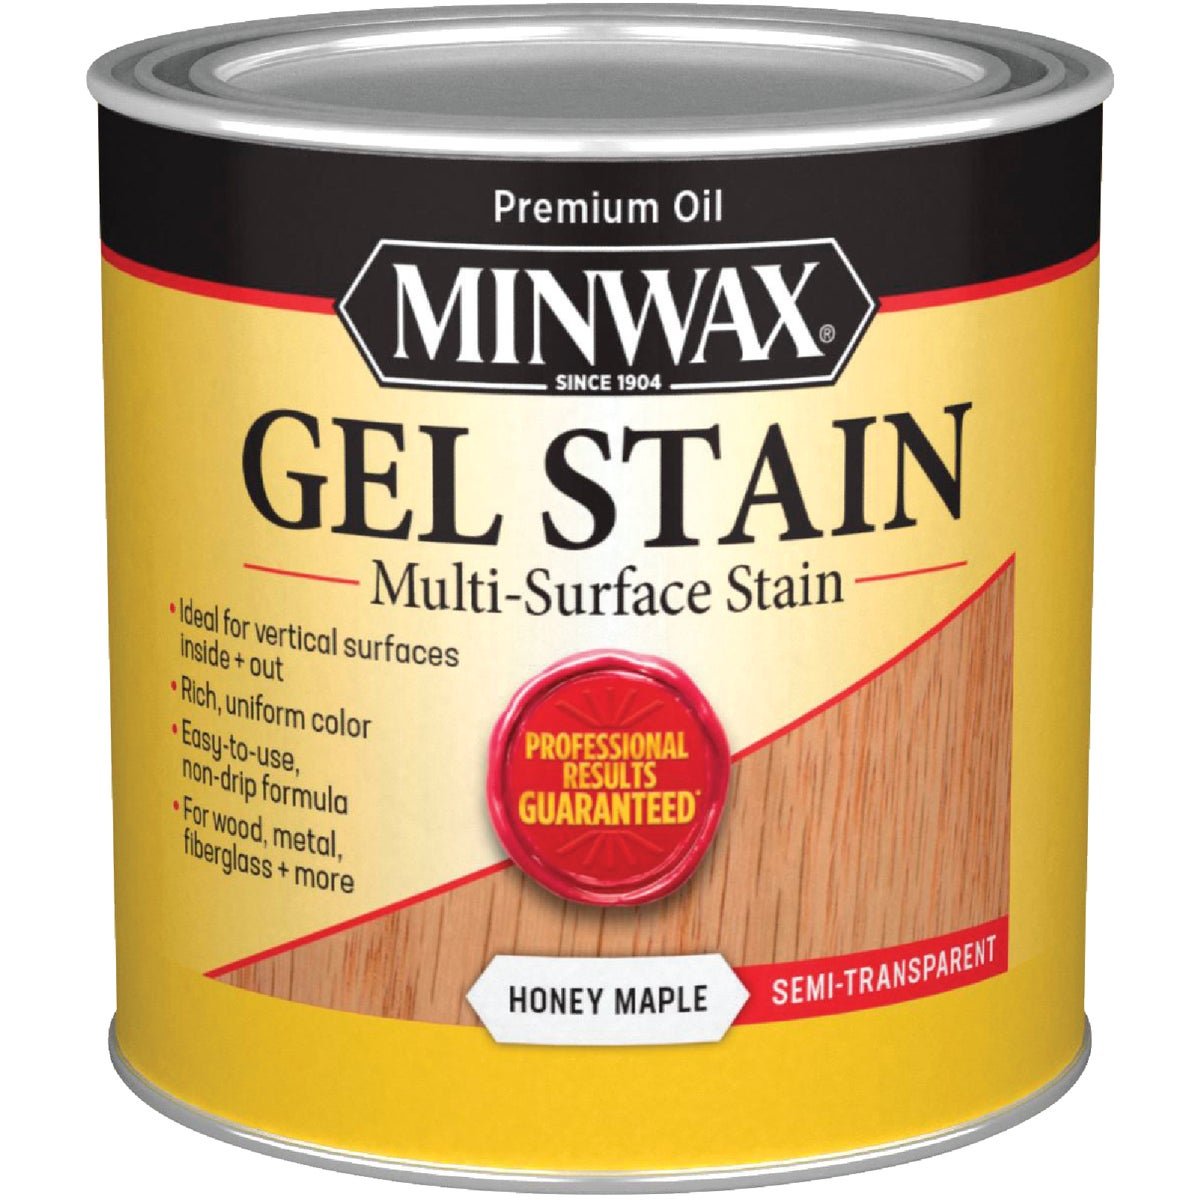 HONEY MAPLE GEL STAIN - 260404444 by Minwax Company